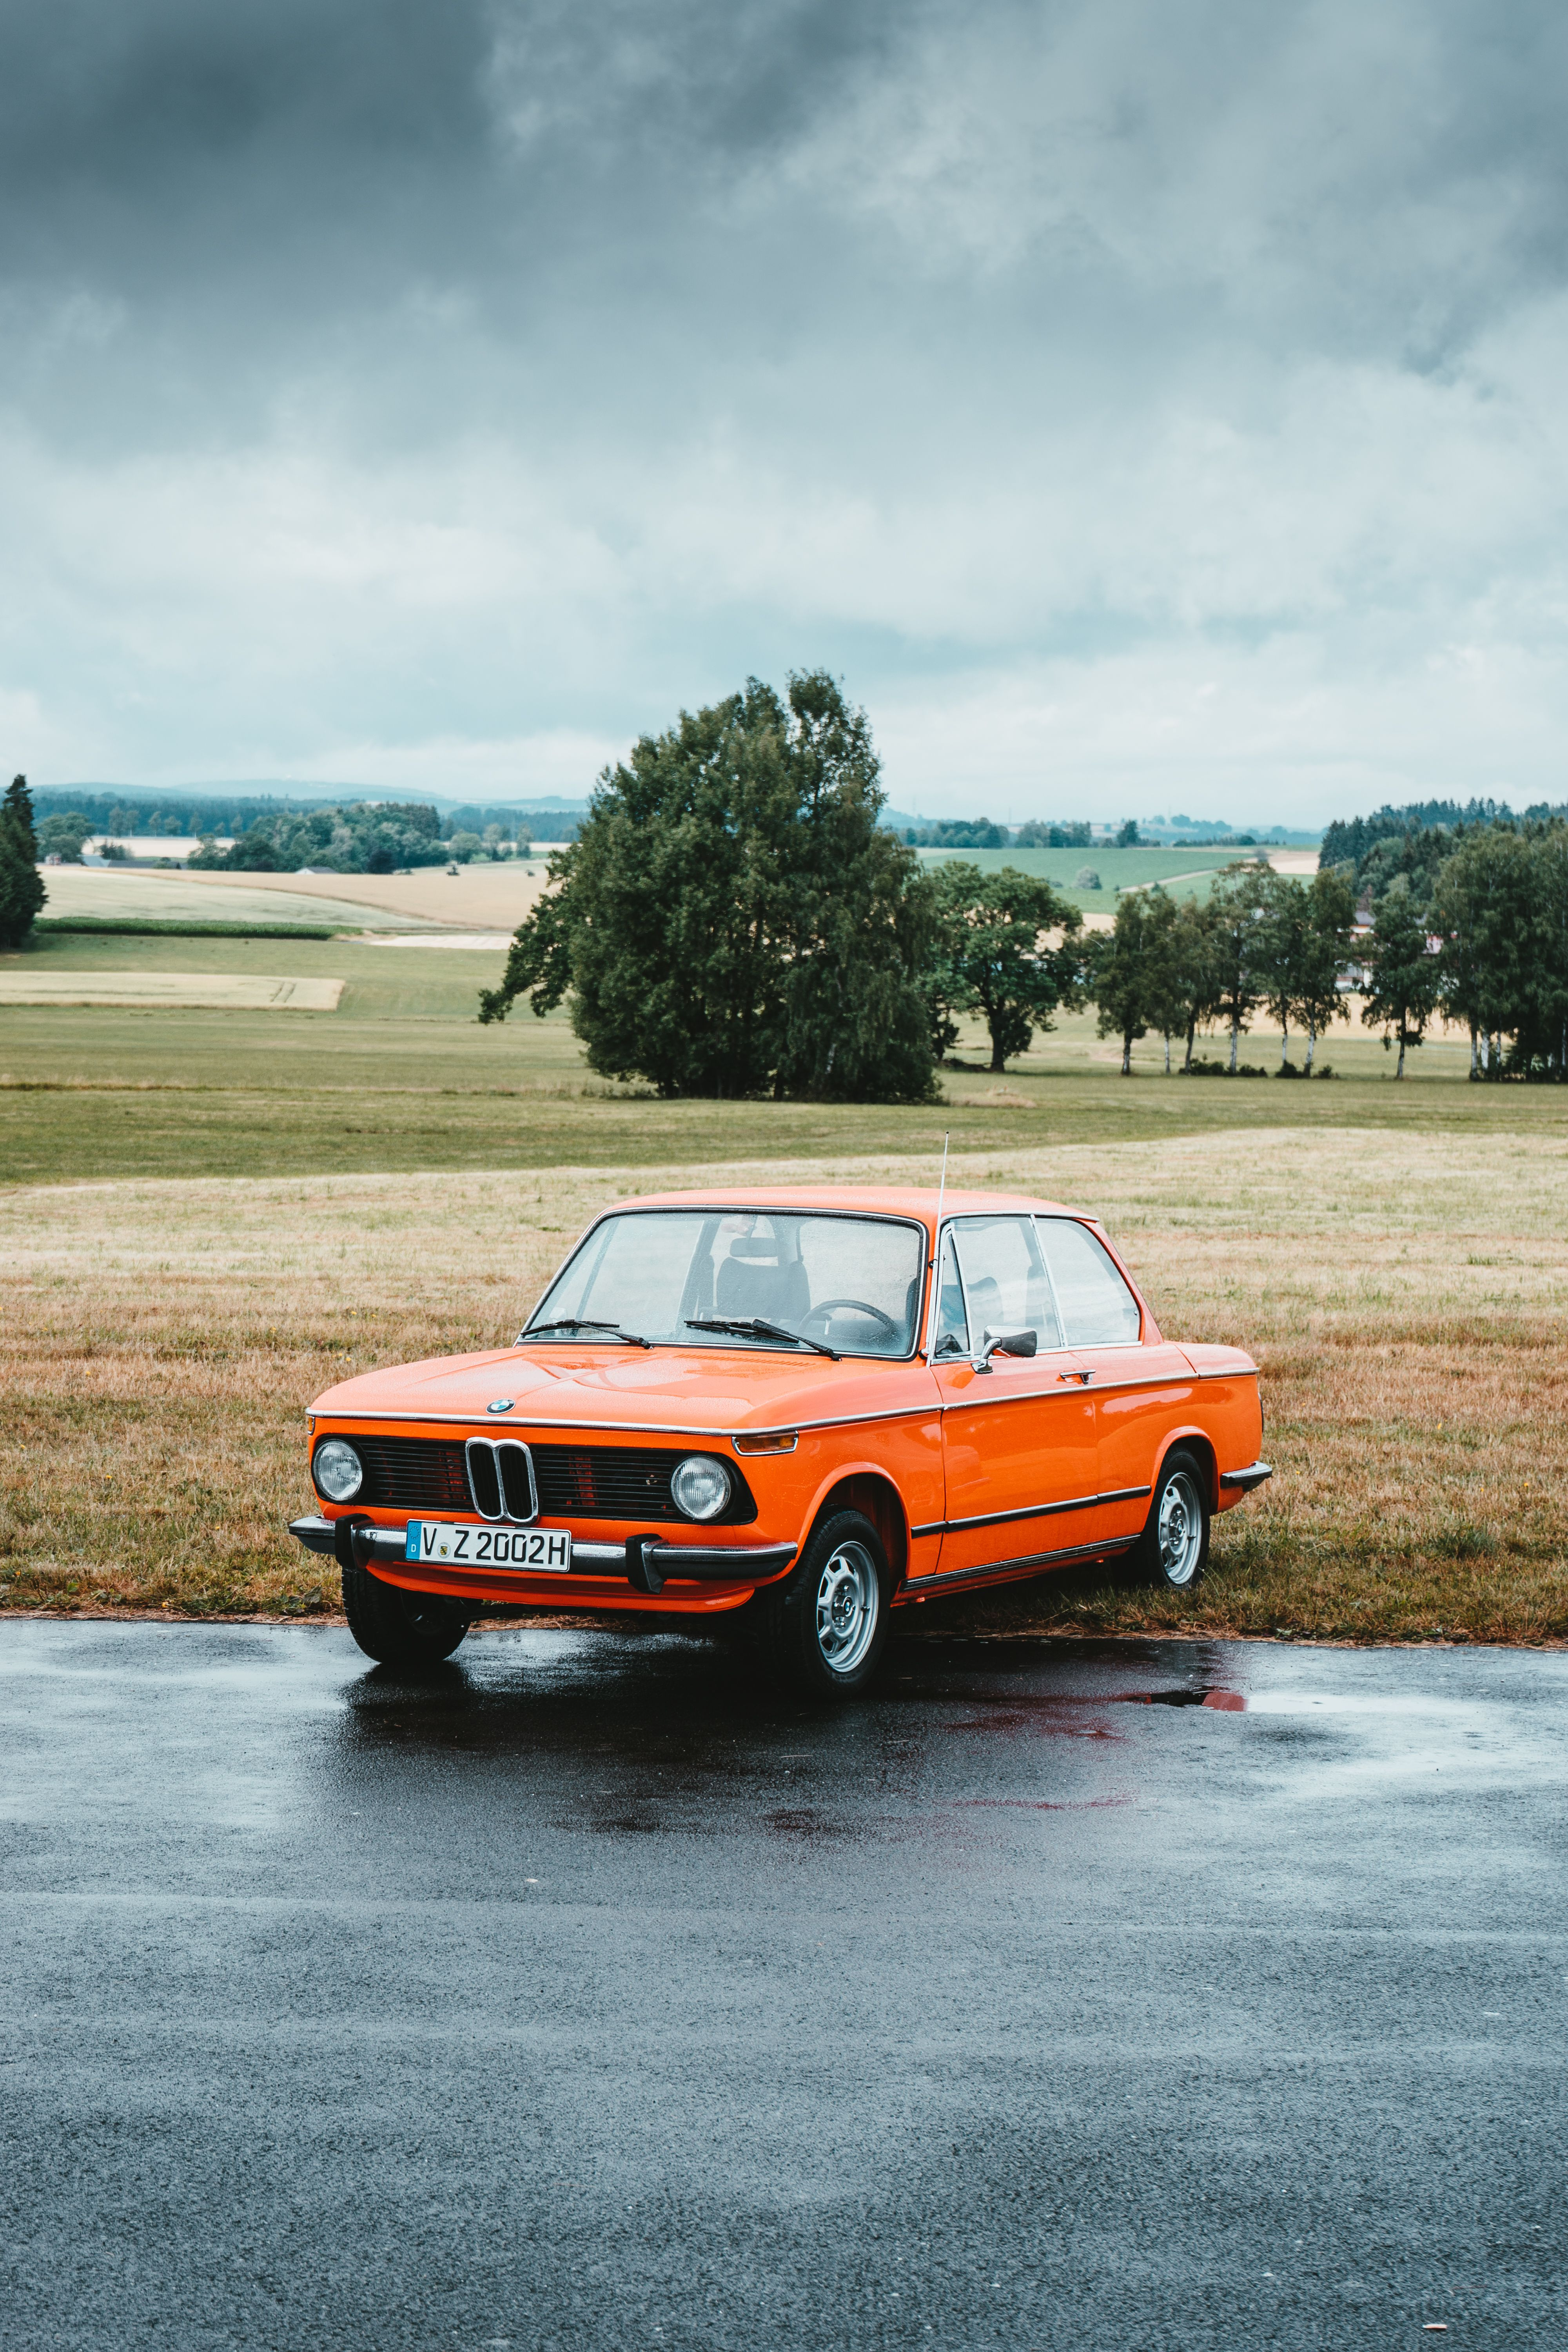 11 Dreadful Vintage Pictures Orange Classic BMW Coupe Parked At Roadside Under G…